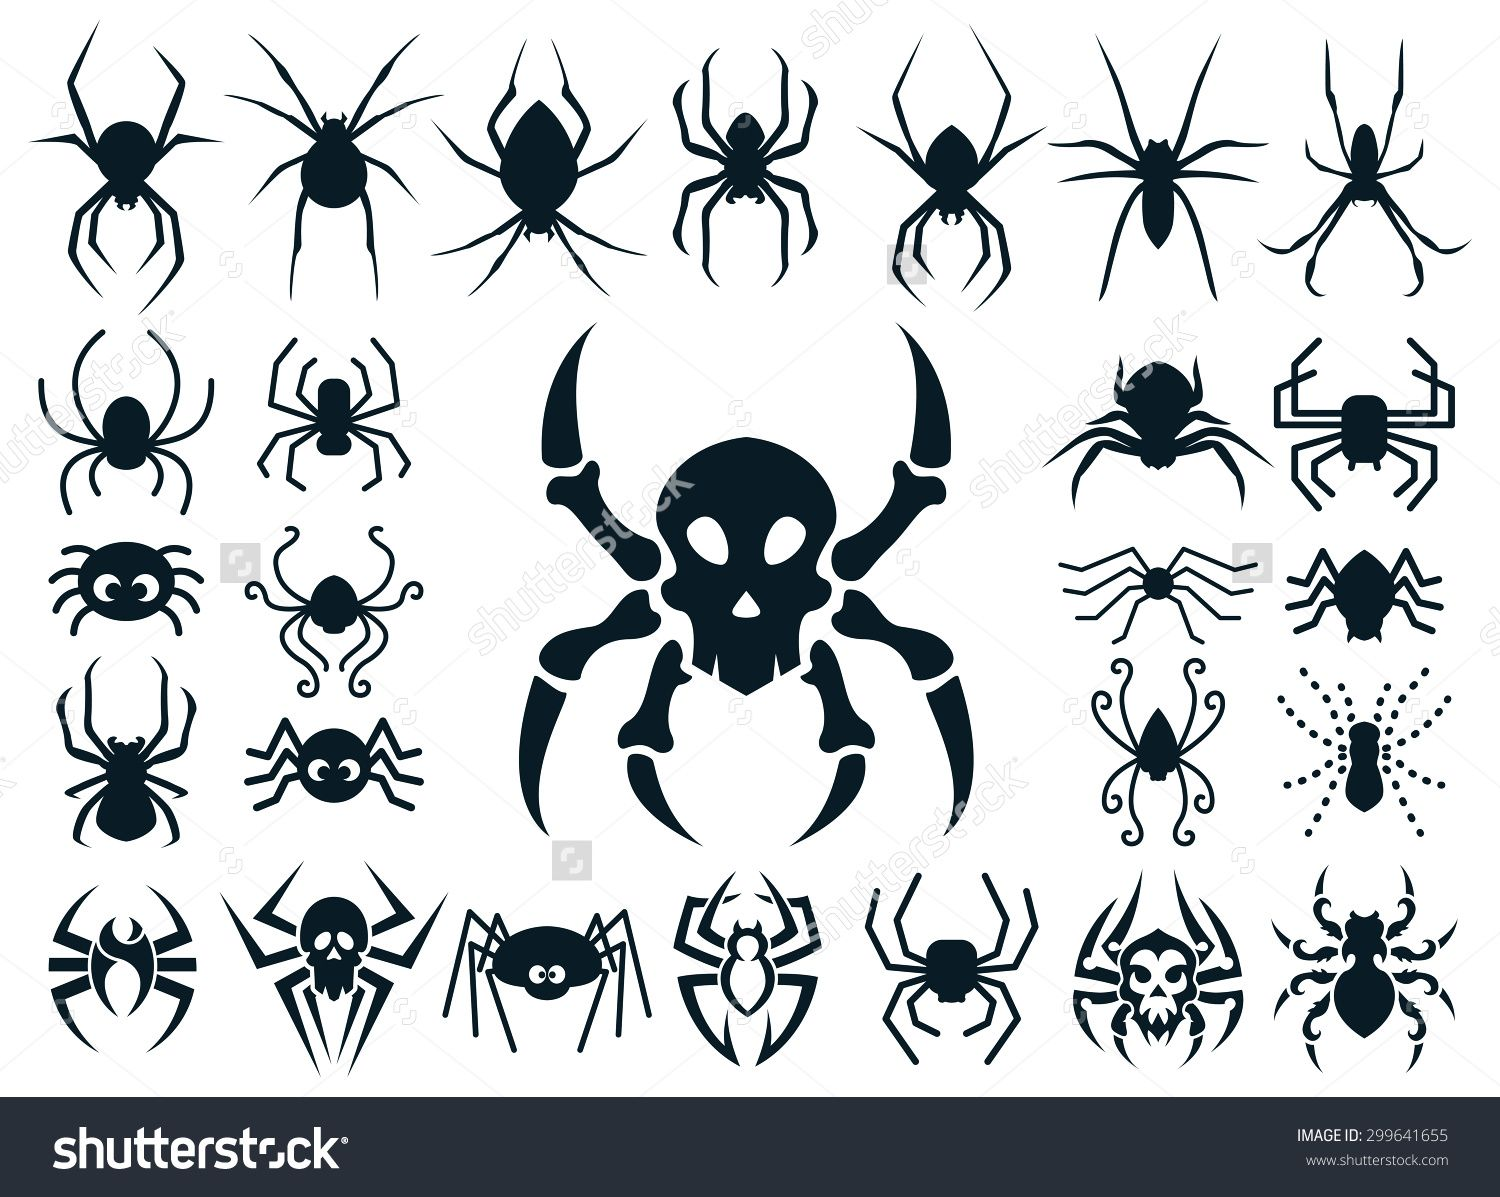 a set of spider shapes in different styles natural cute cartoon spider skull design and tribal tattoo style 299641655 - Different Styles Of Design